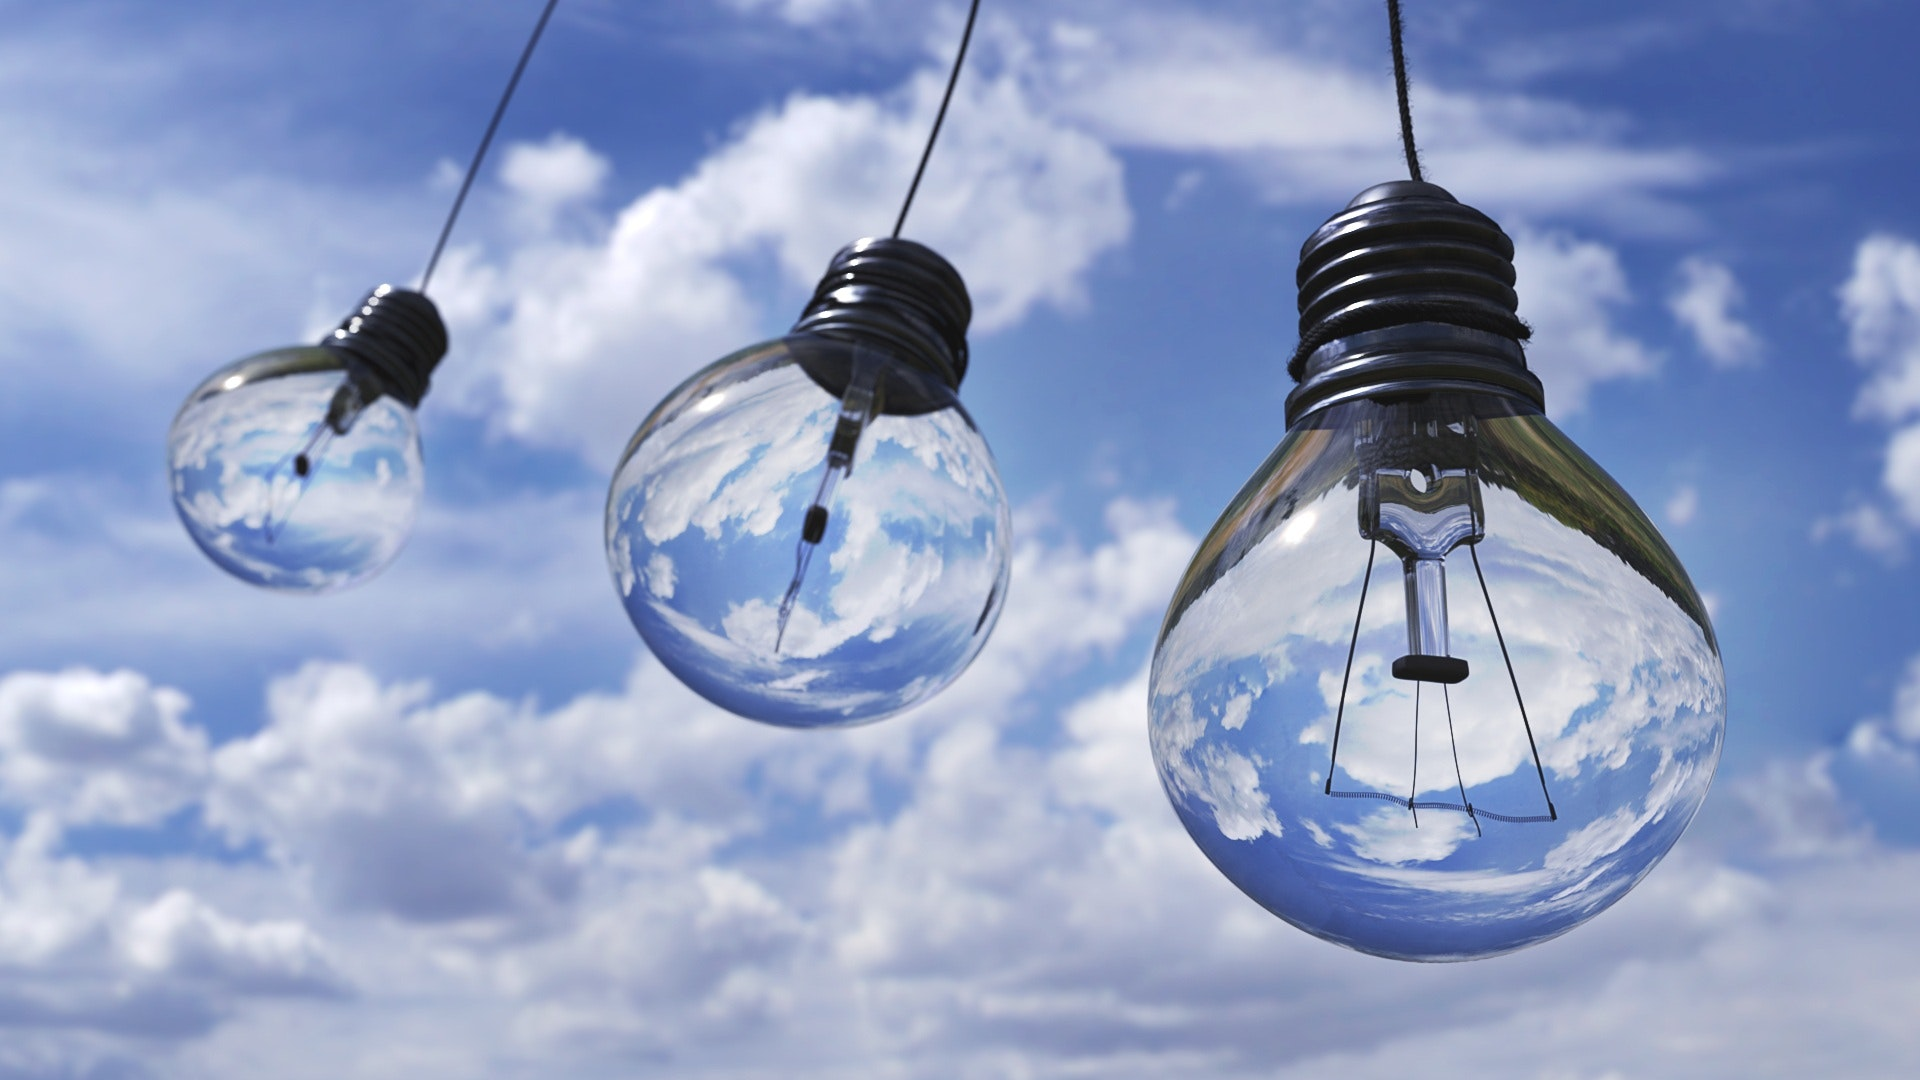 £10m Funding Round Opens to Support Vulnerable Energy Consumers